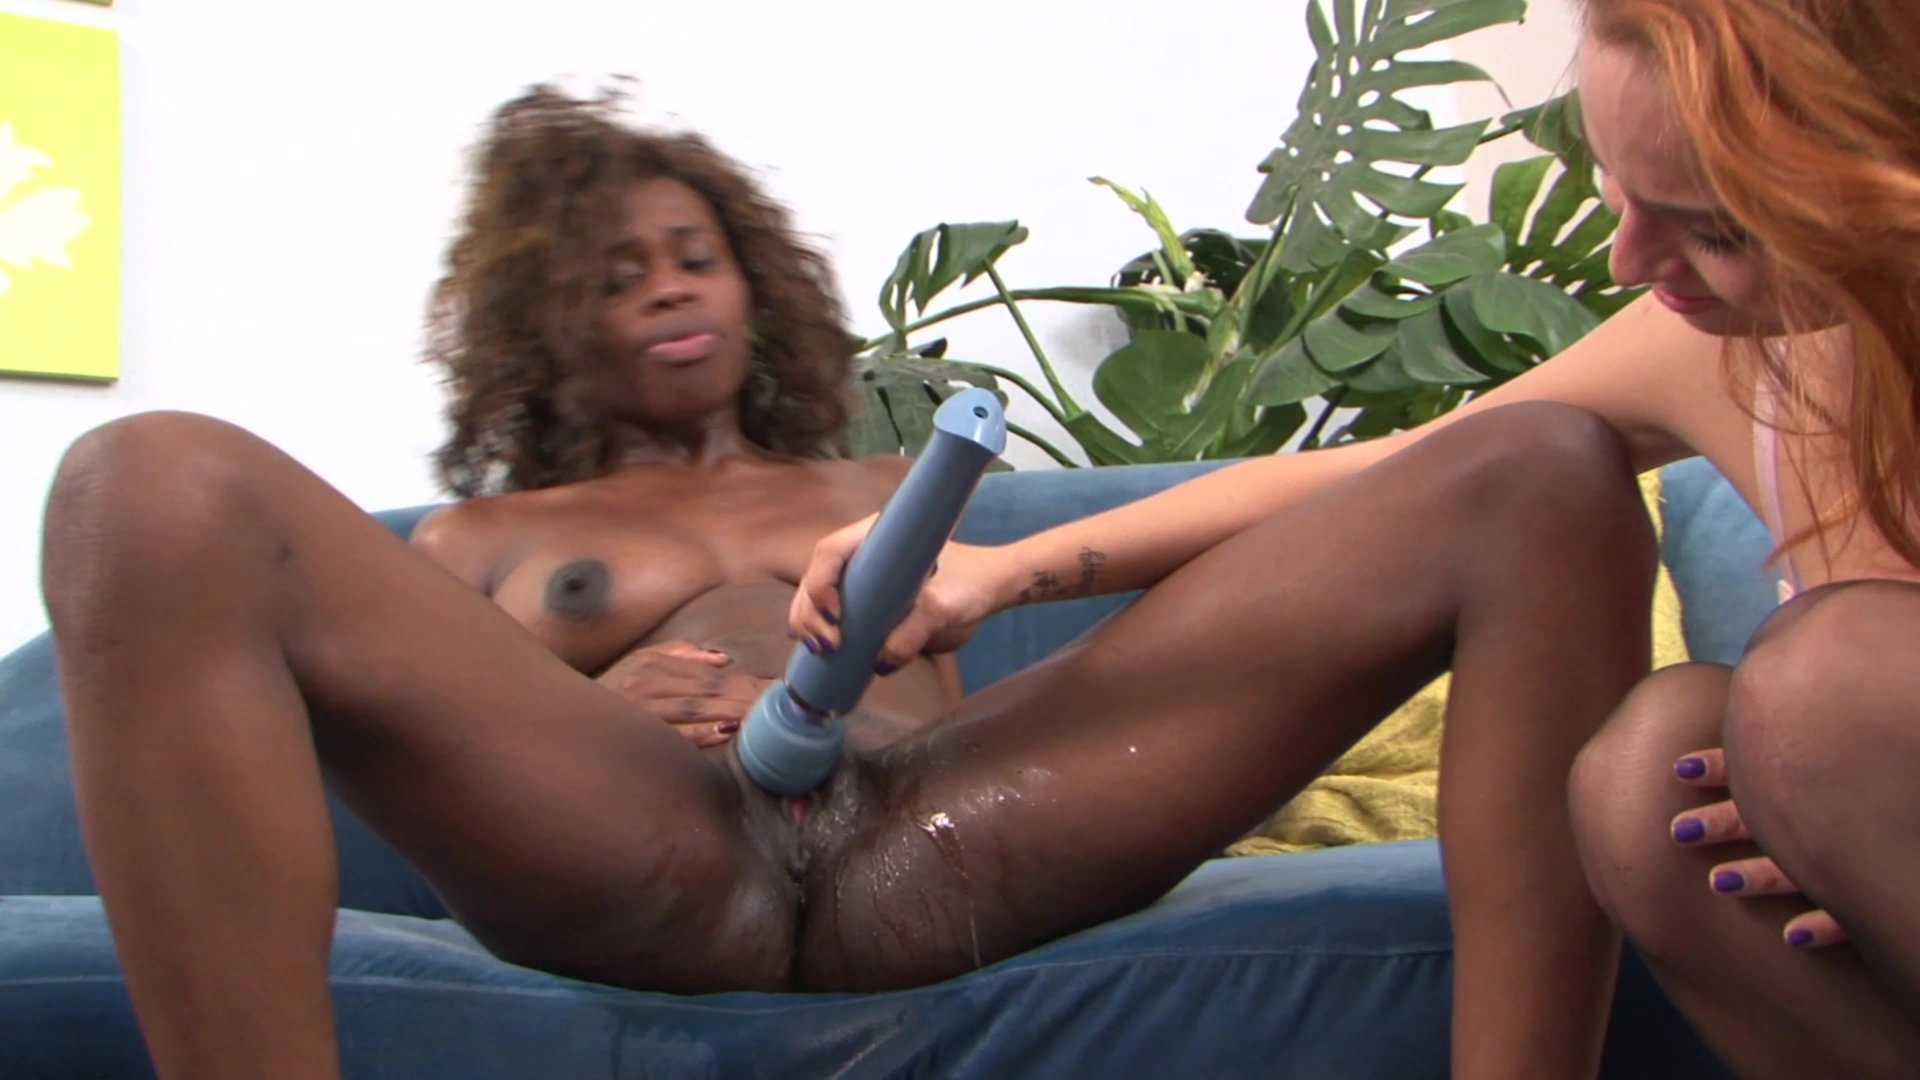 Cytherea lesbian squirting